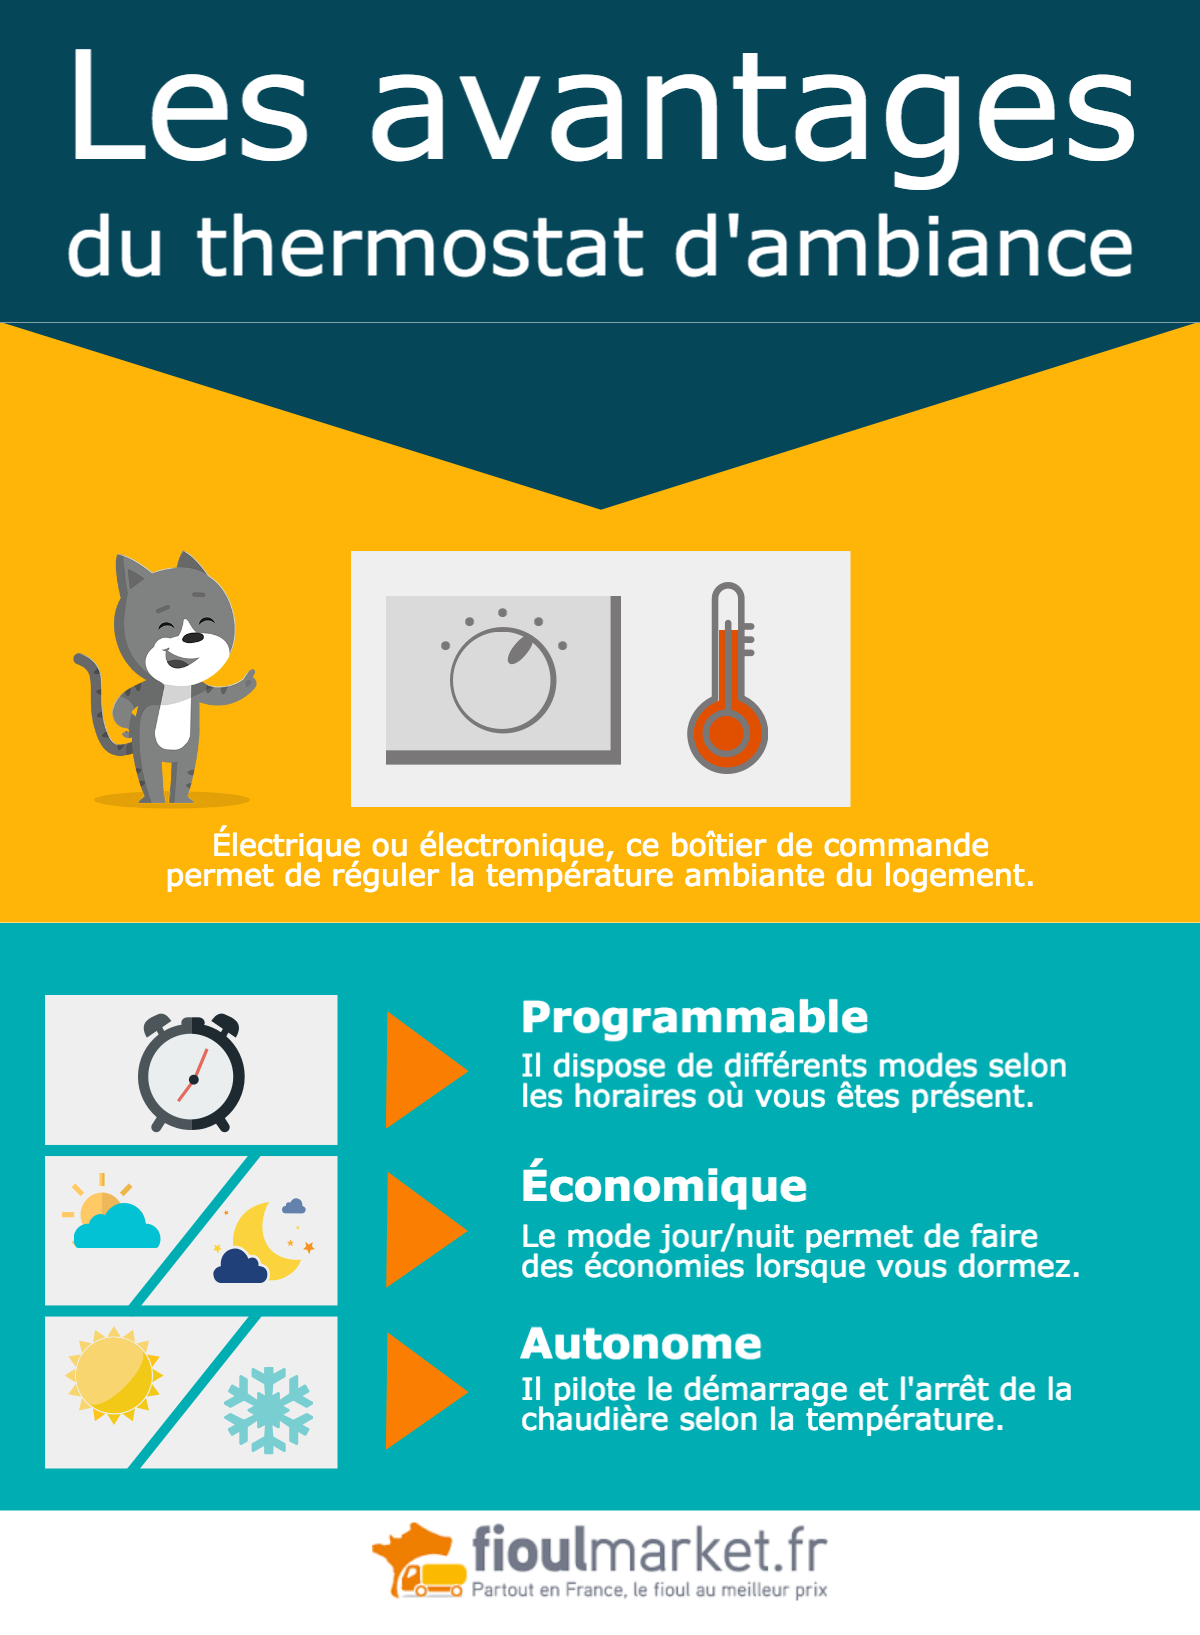 Thermostat d'ambiance ou robinet thermostatique